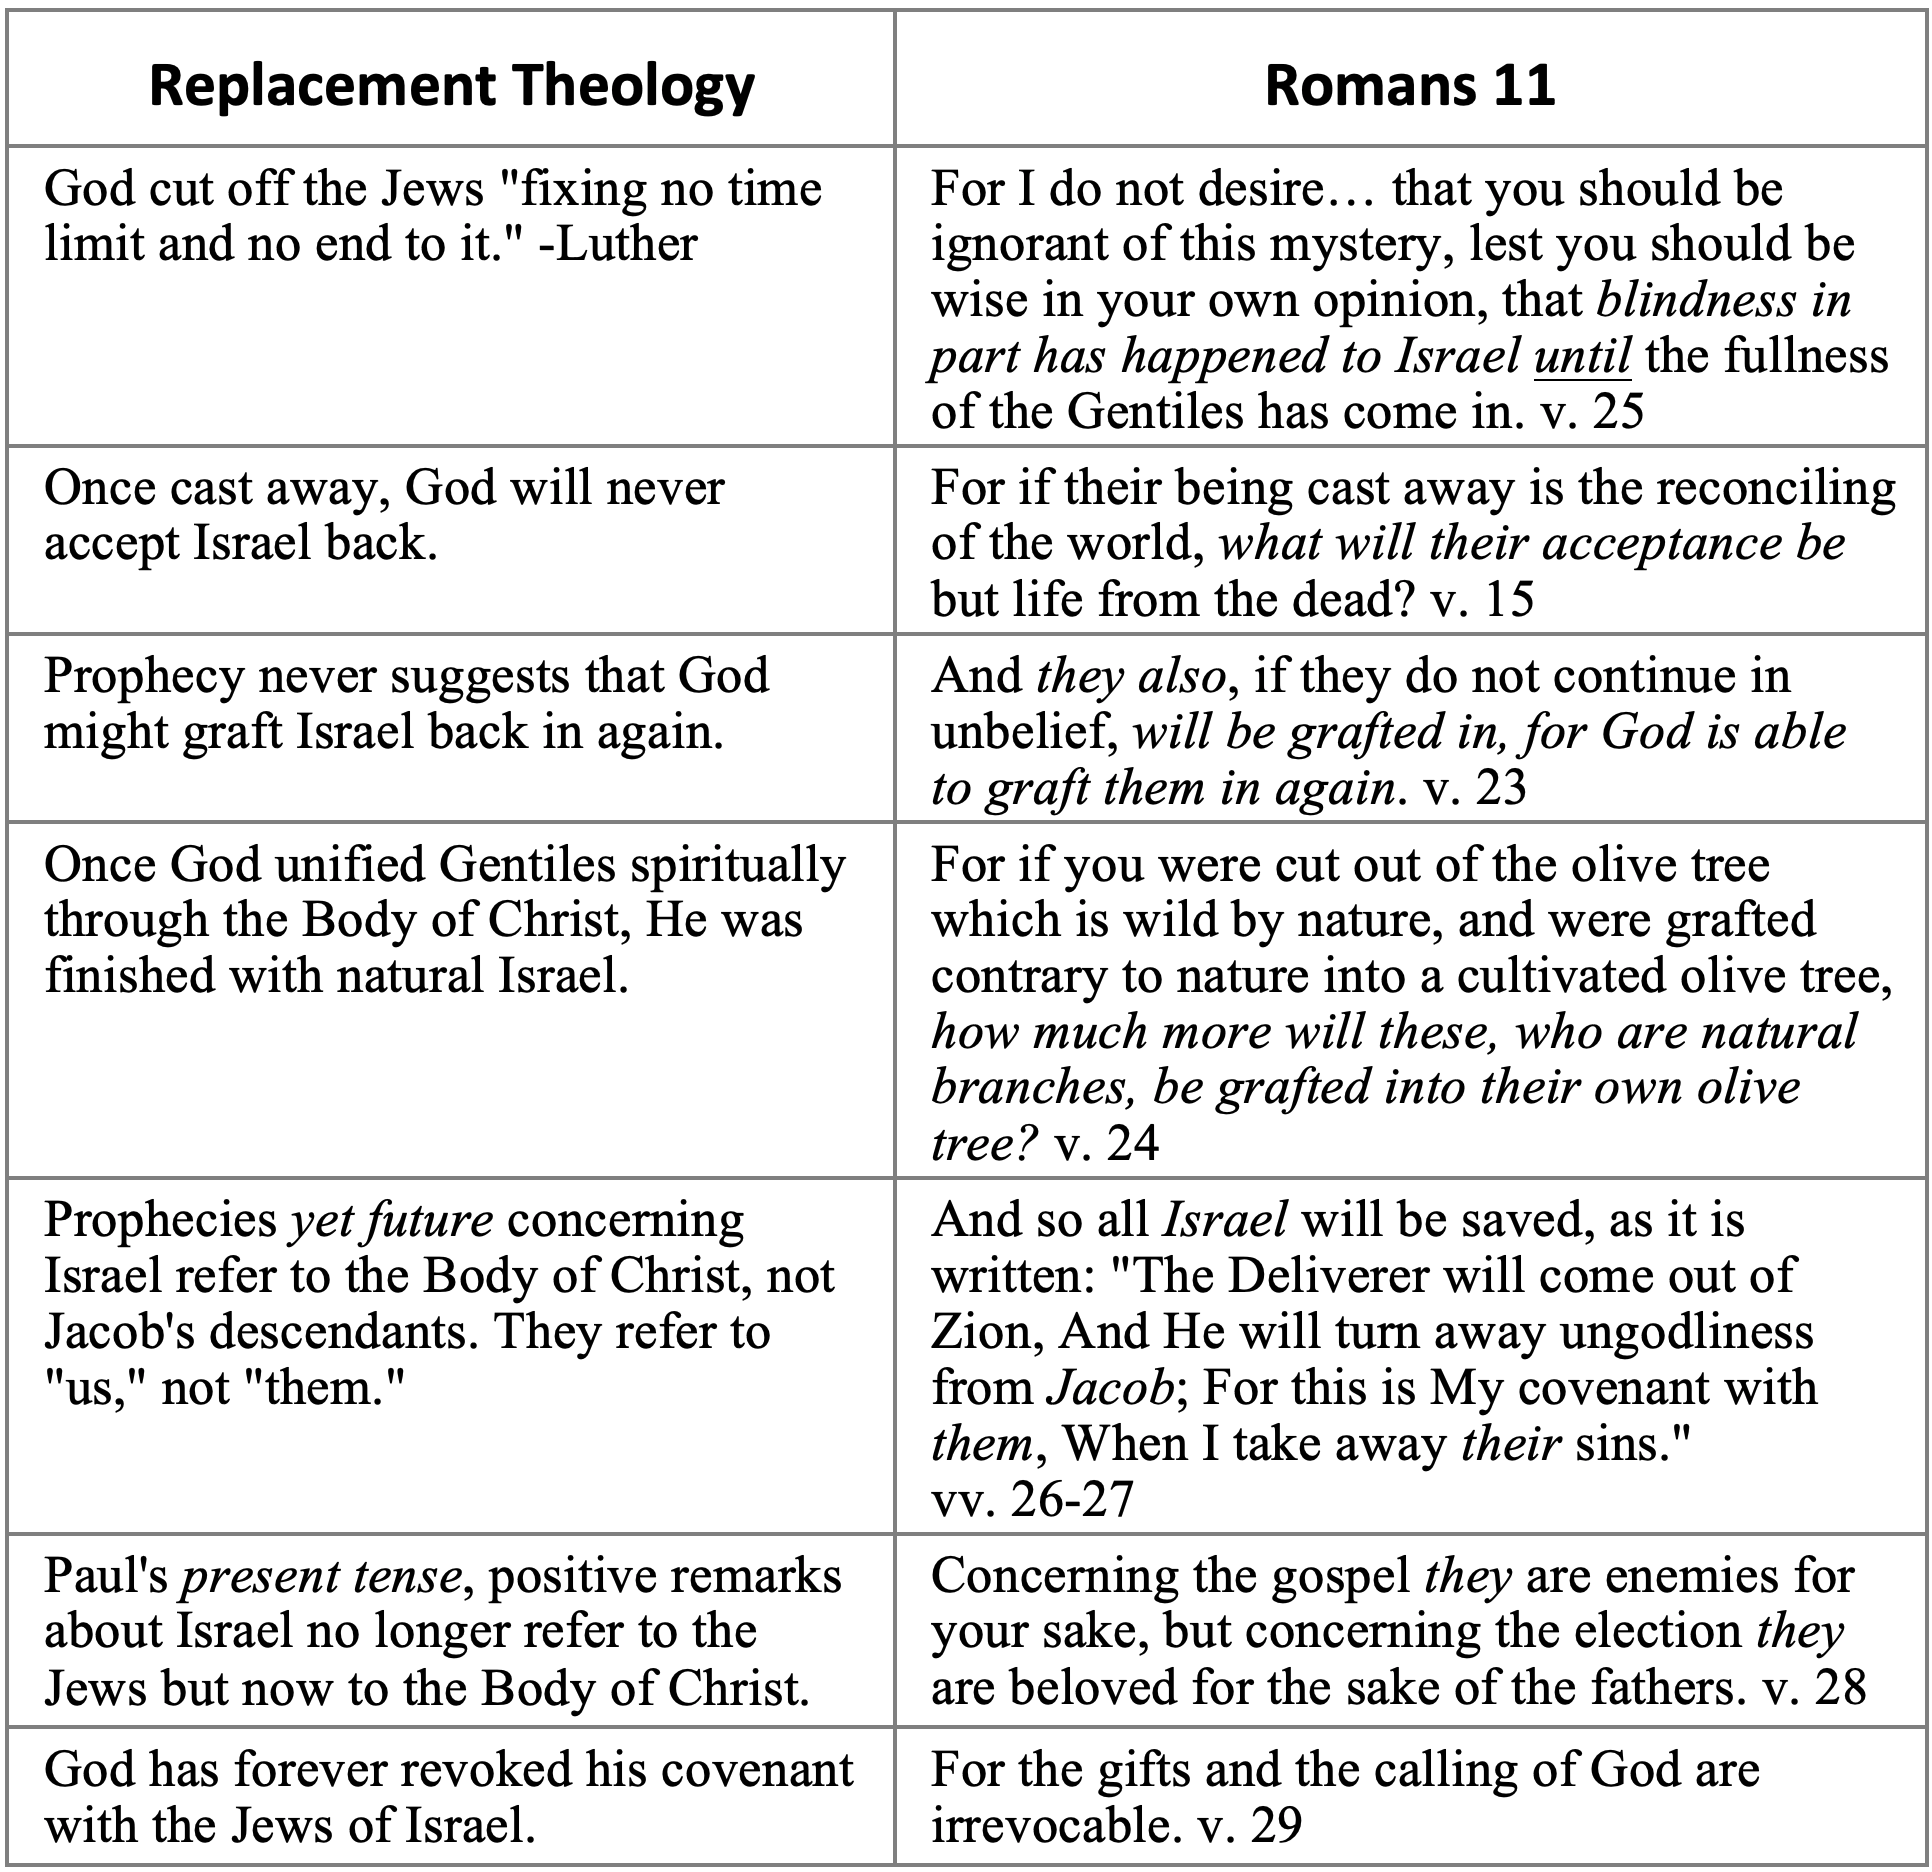 Replacement Theology vs. Romans 11 chart